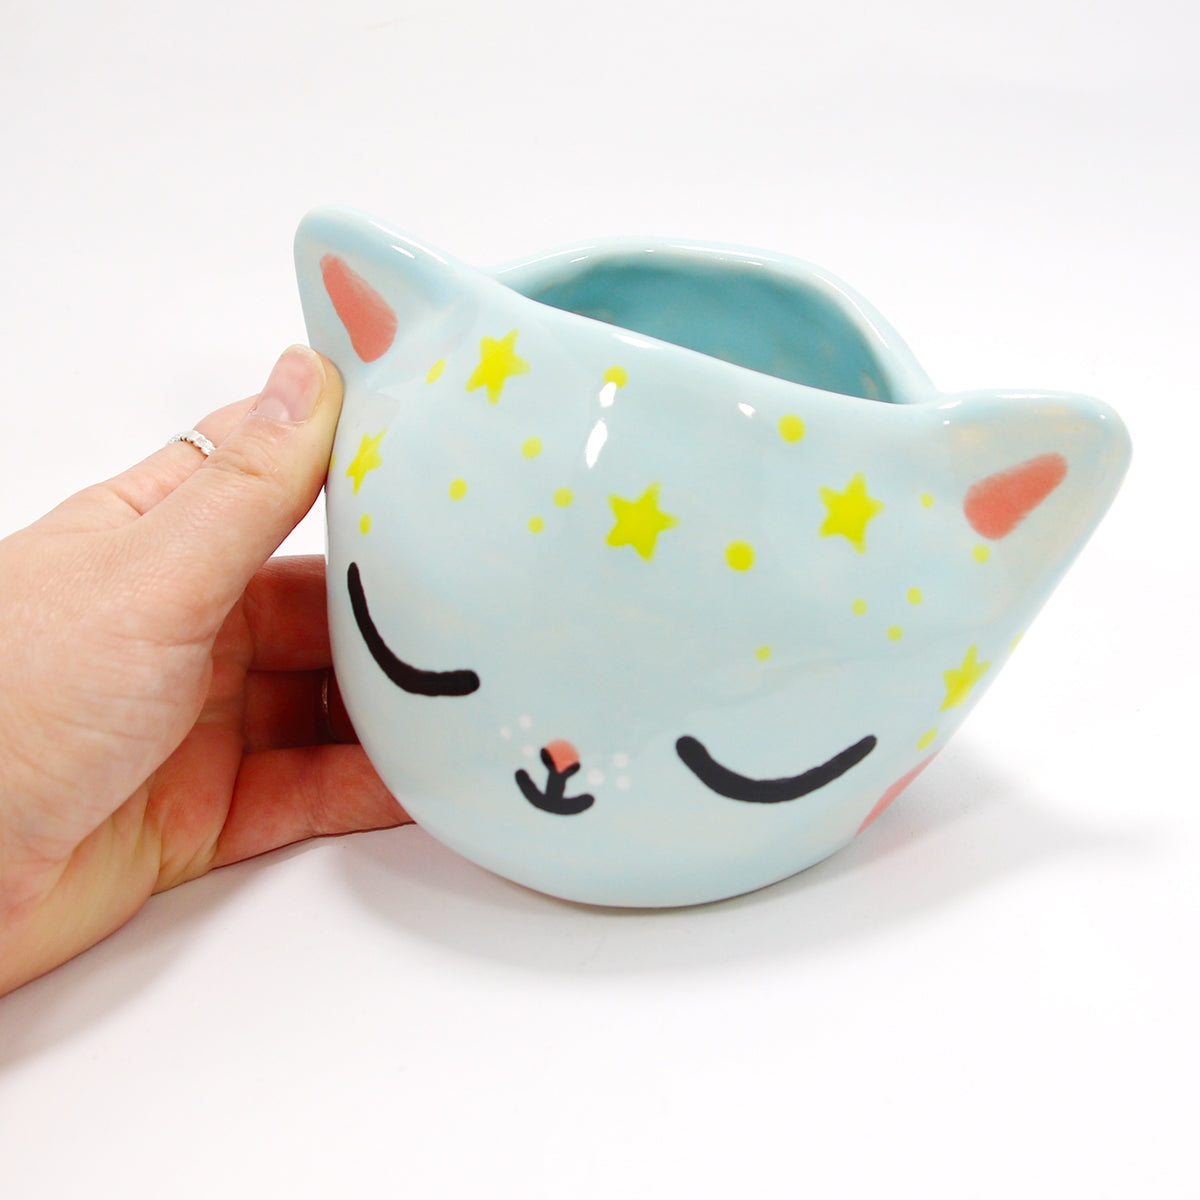 Ceramic Kitty Planter #581 - M